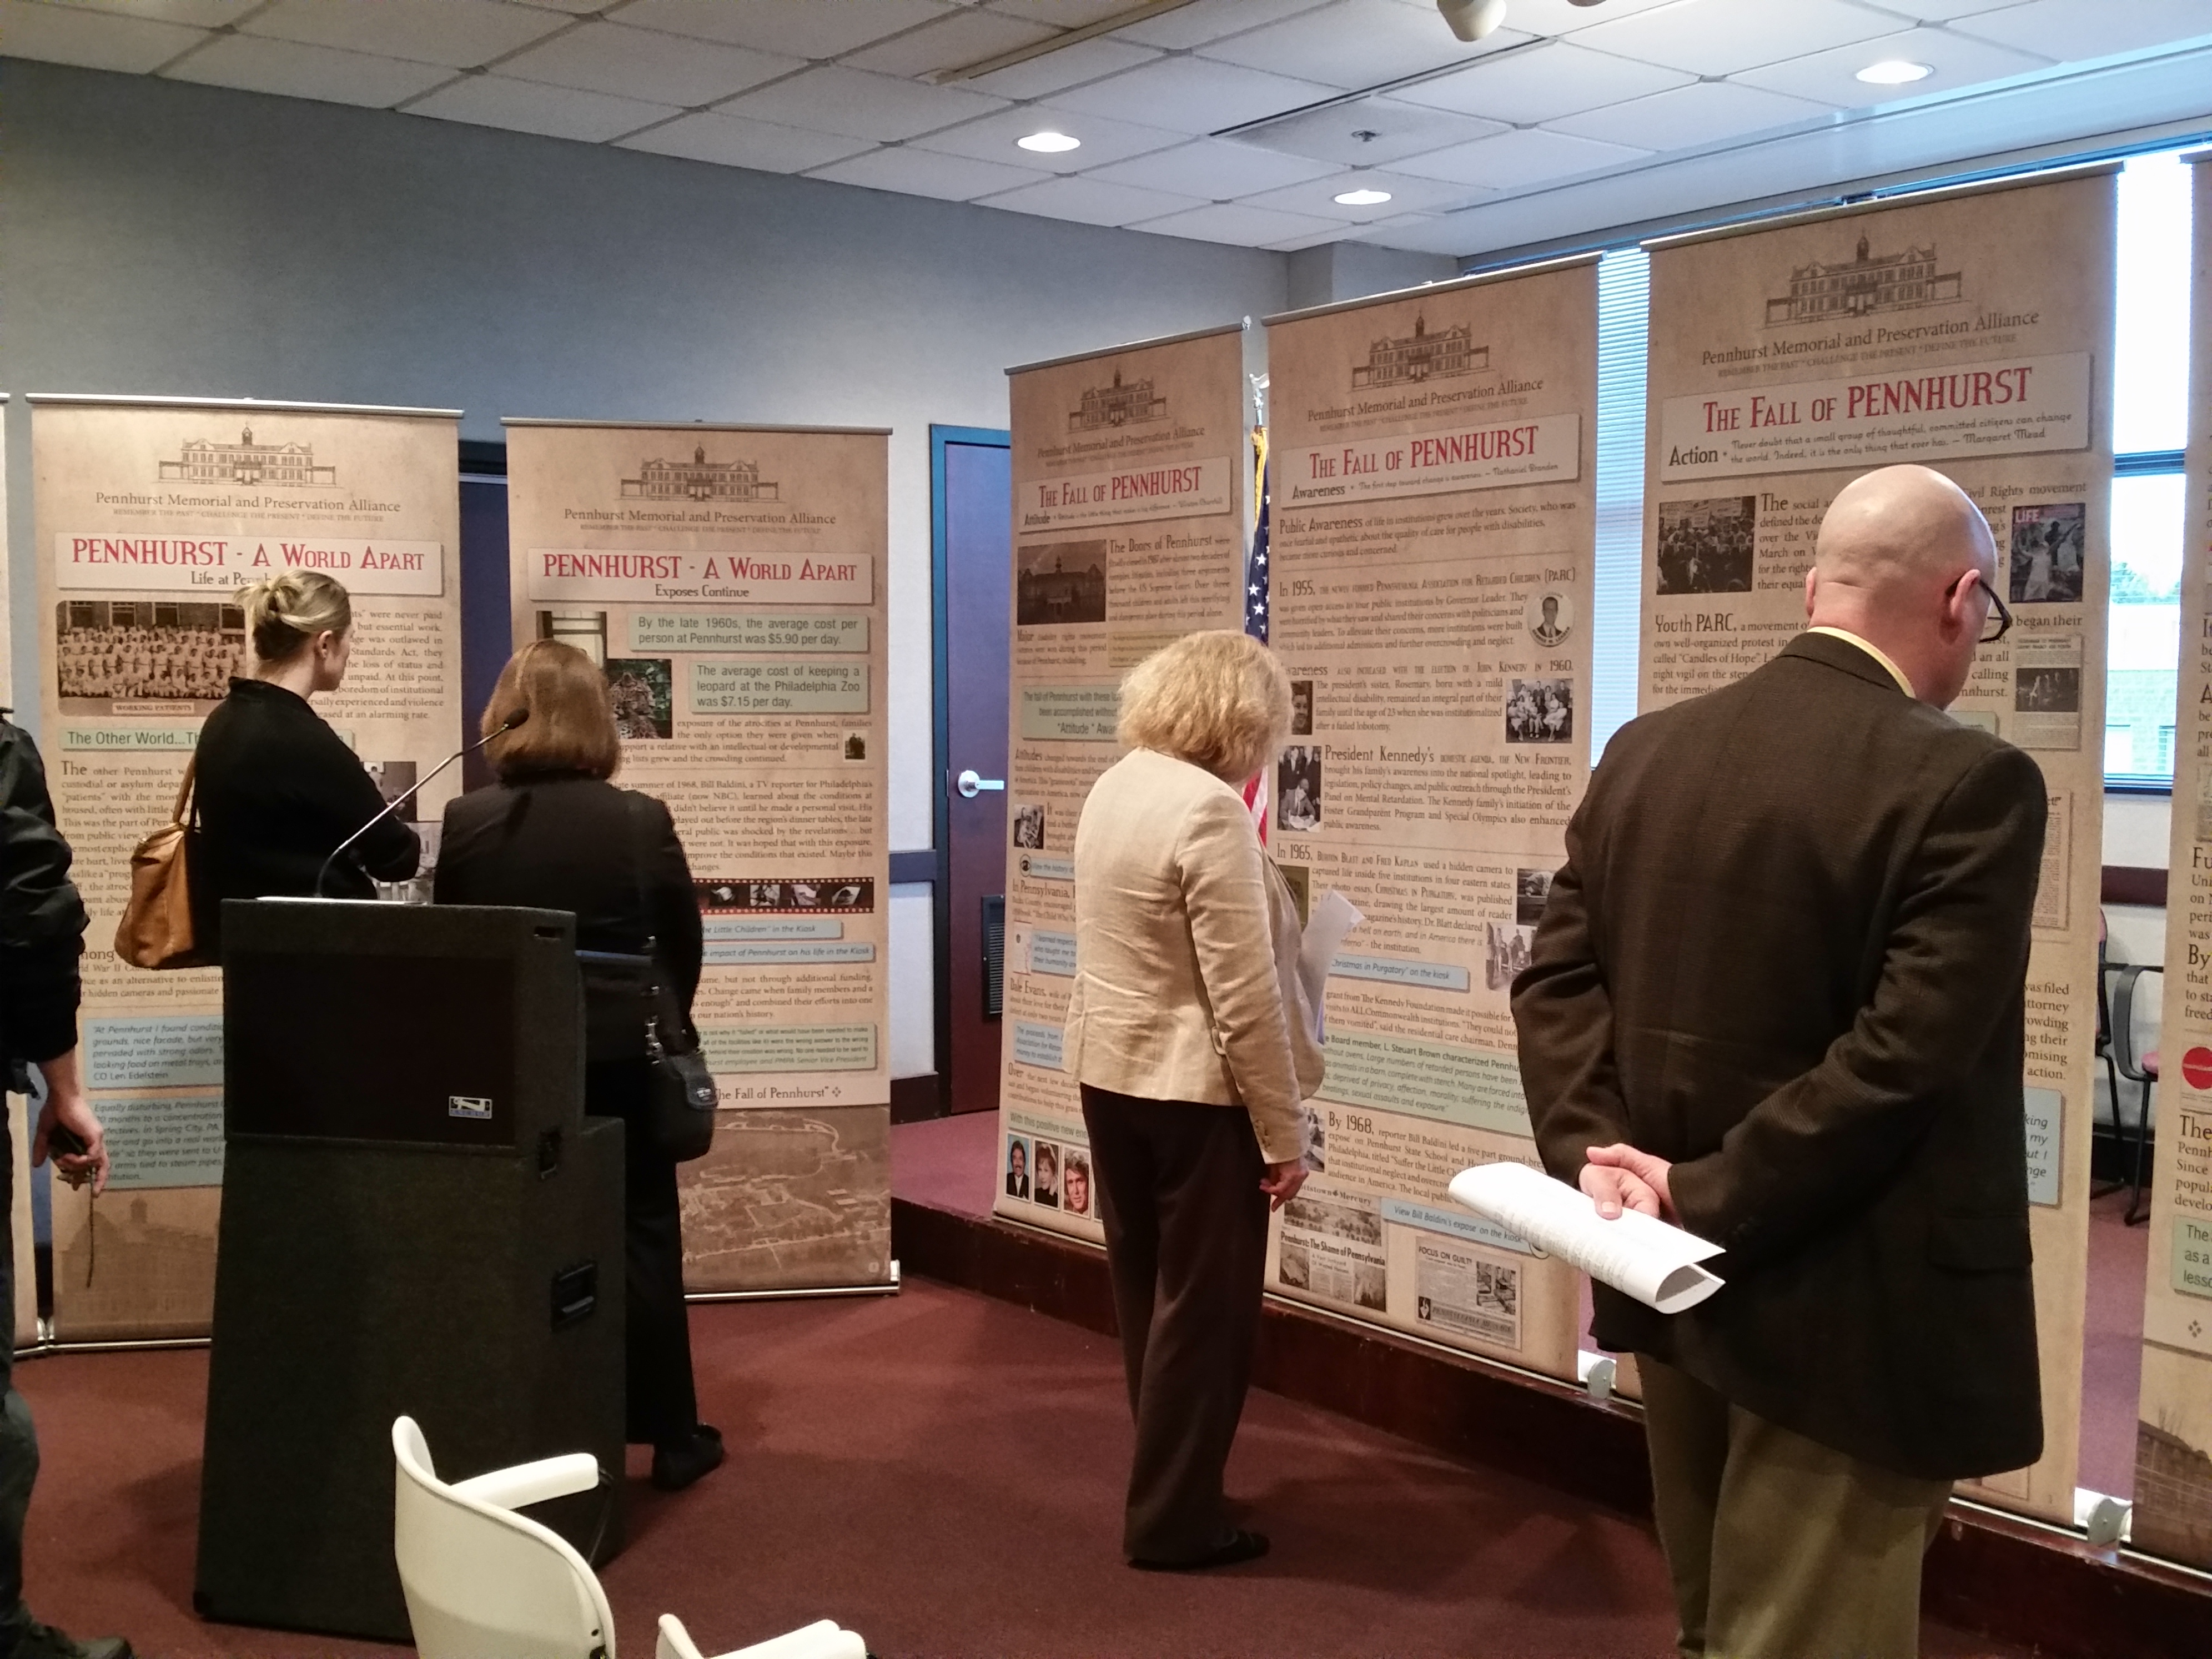 People viewing Pennhurst displays, which are banner signs placed around a conference room